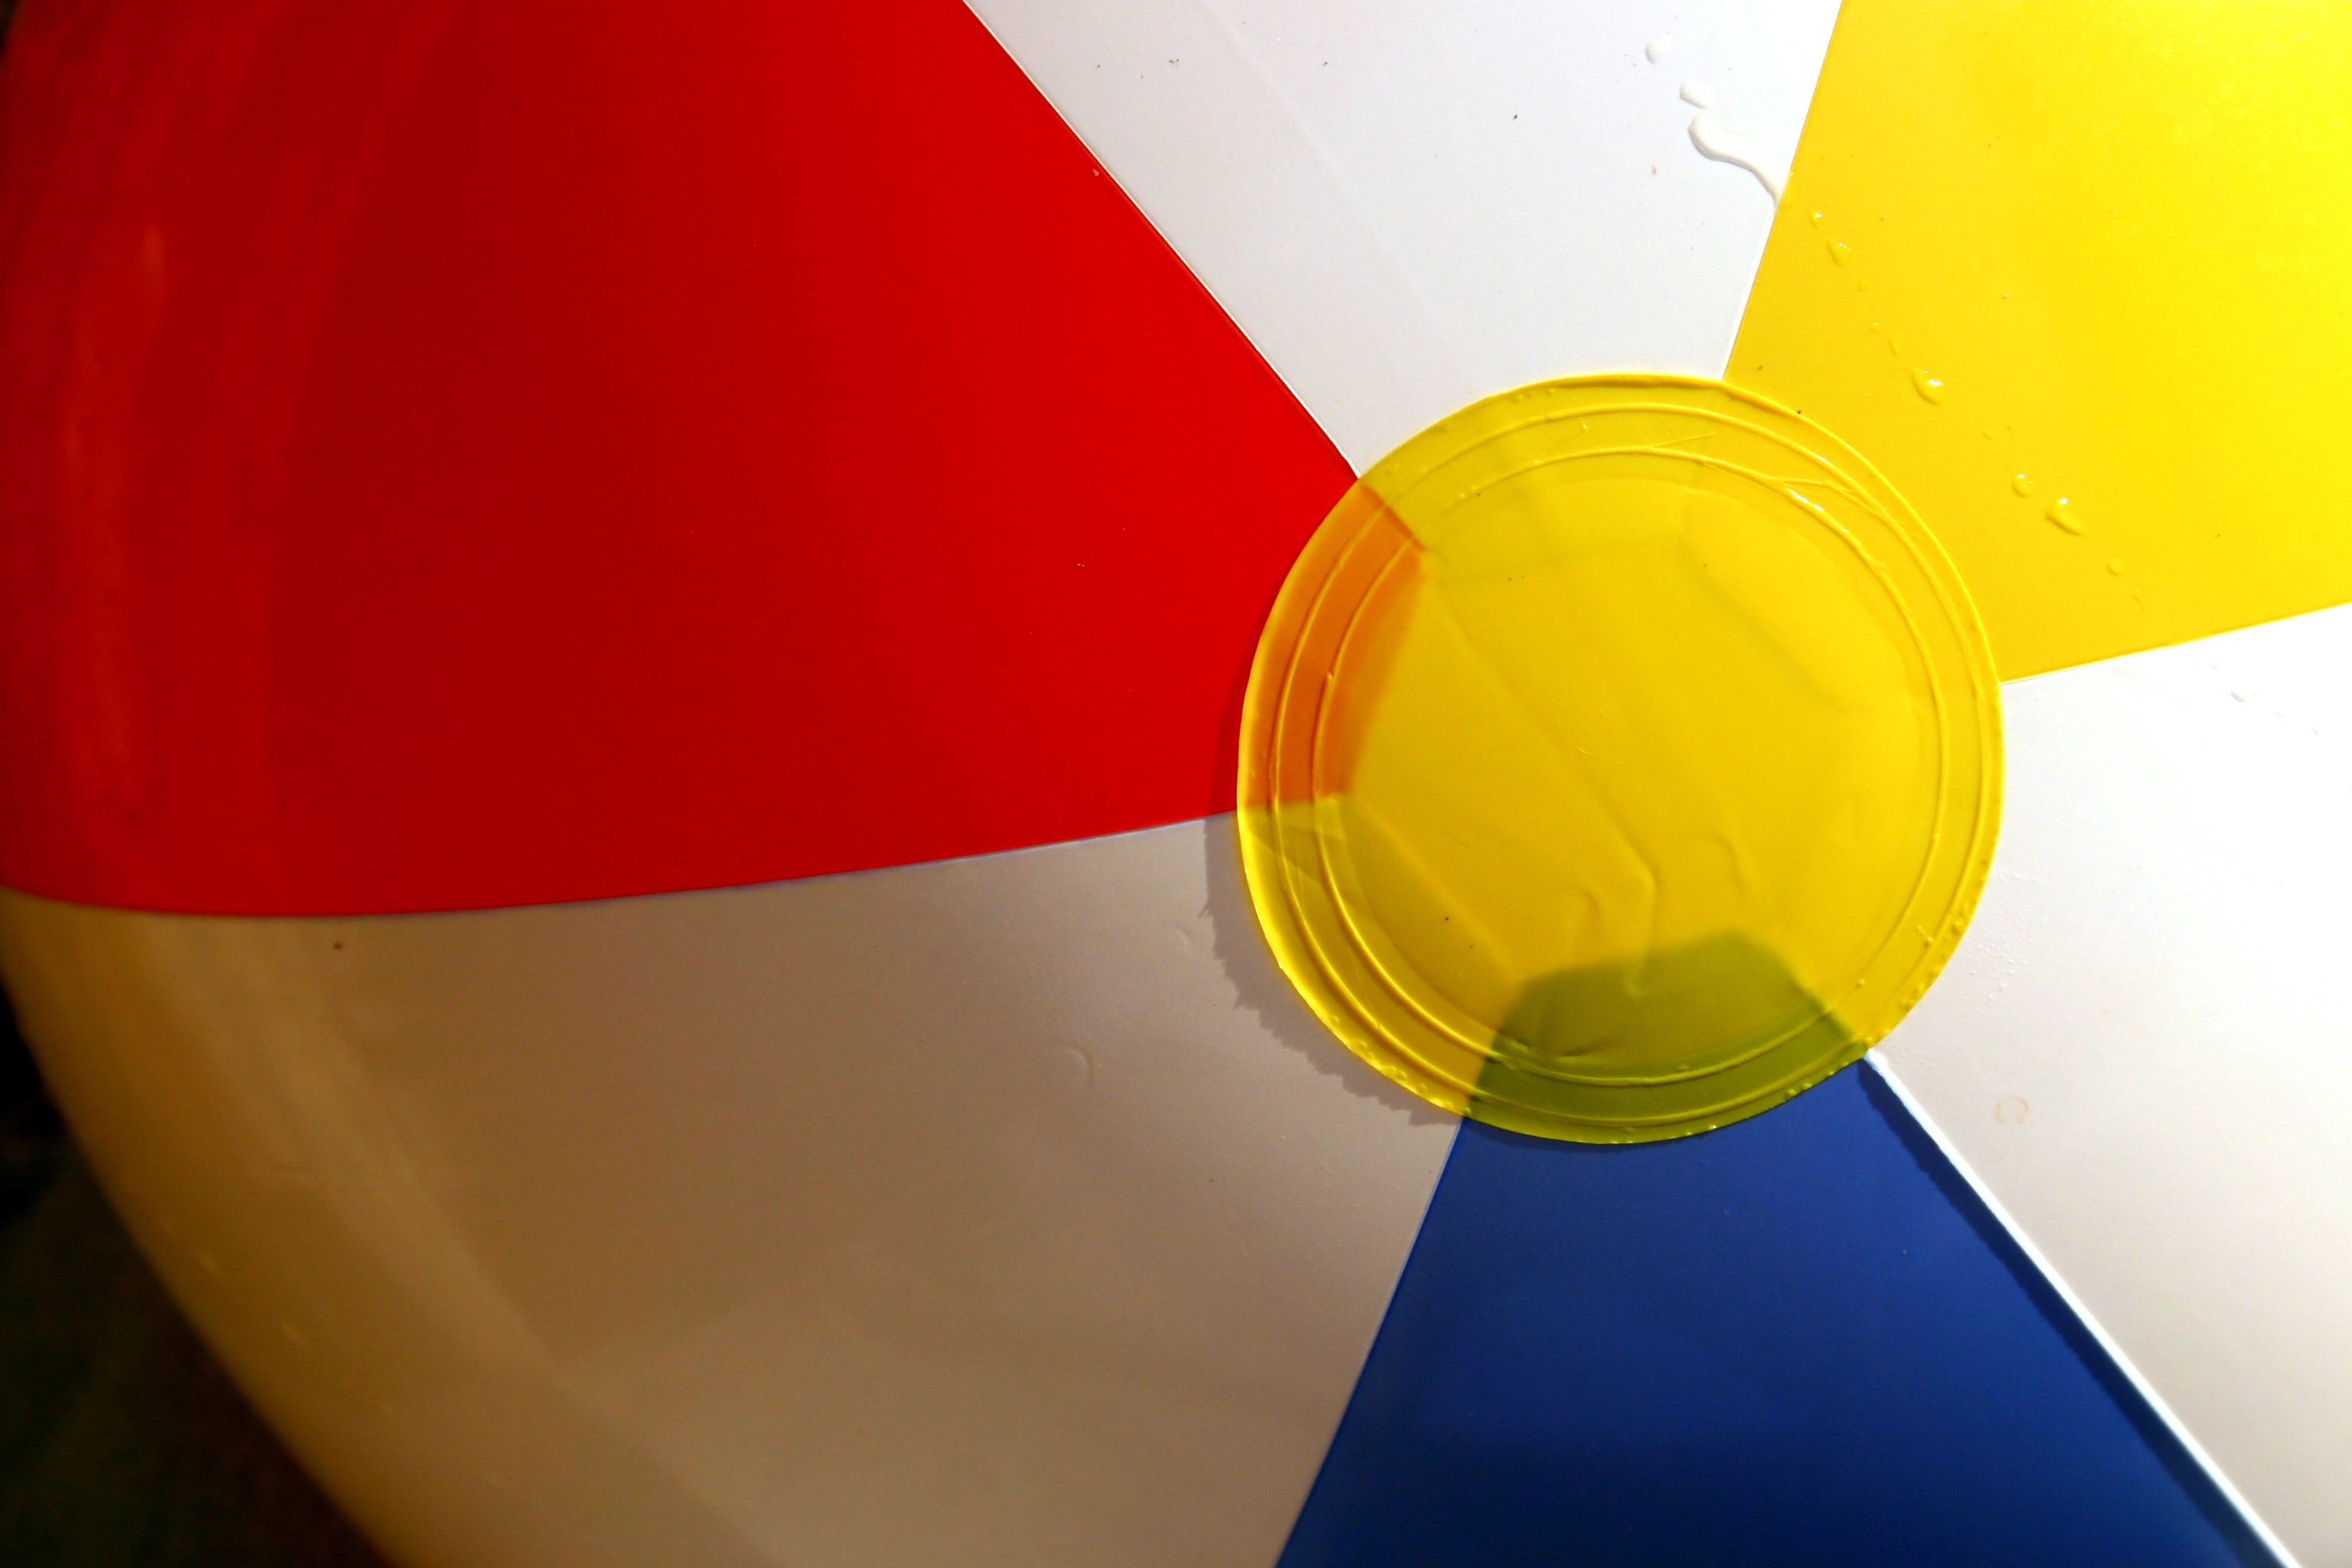 Detail of beach ball